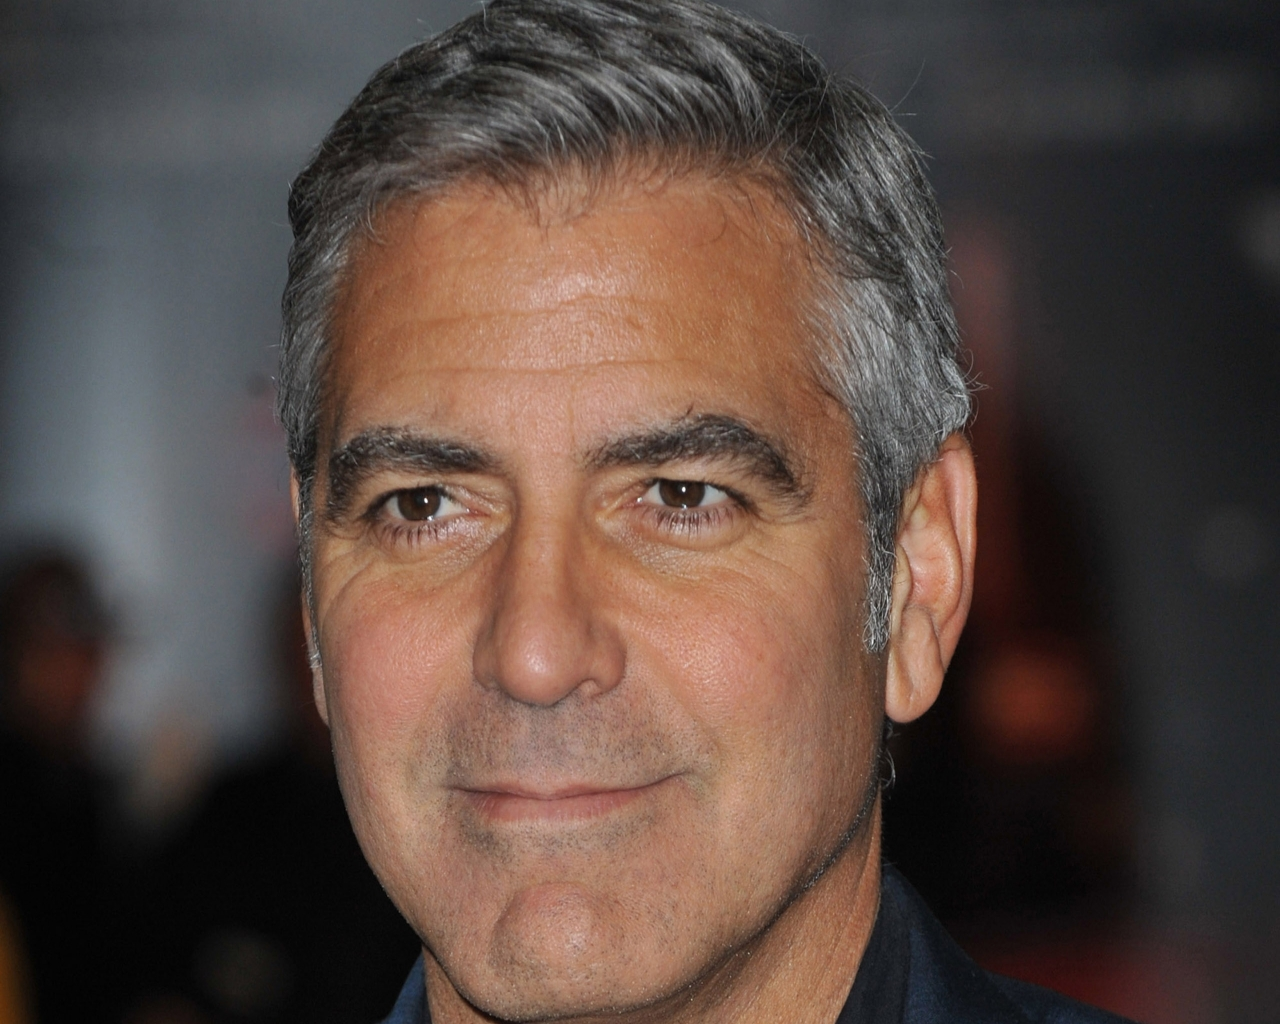 George Clooney Cool Short Hairstyle Men Hairstyles